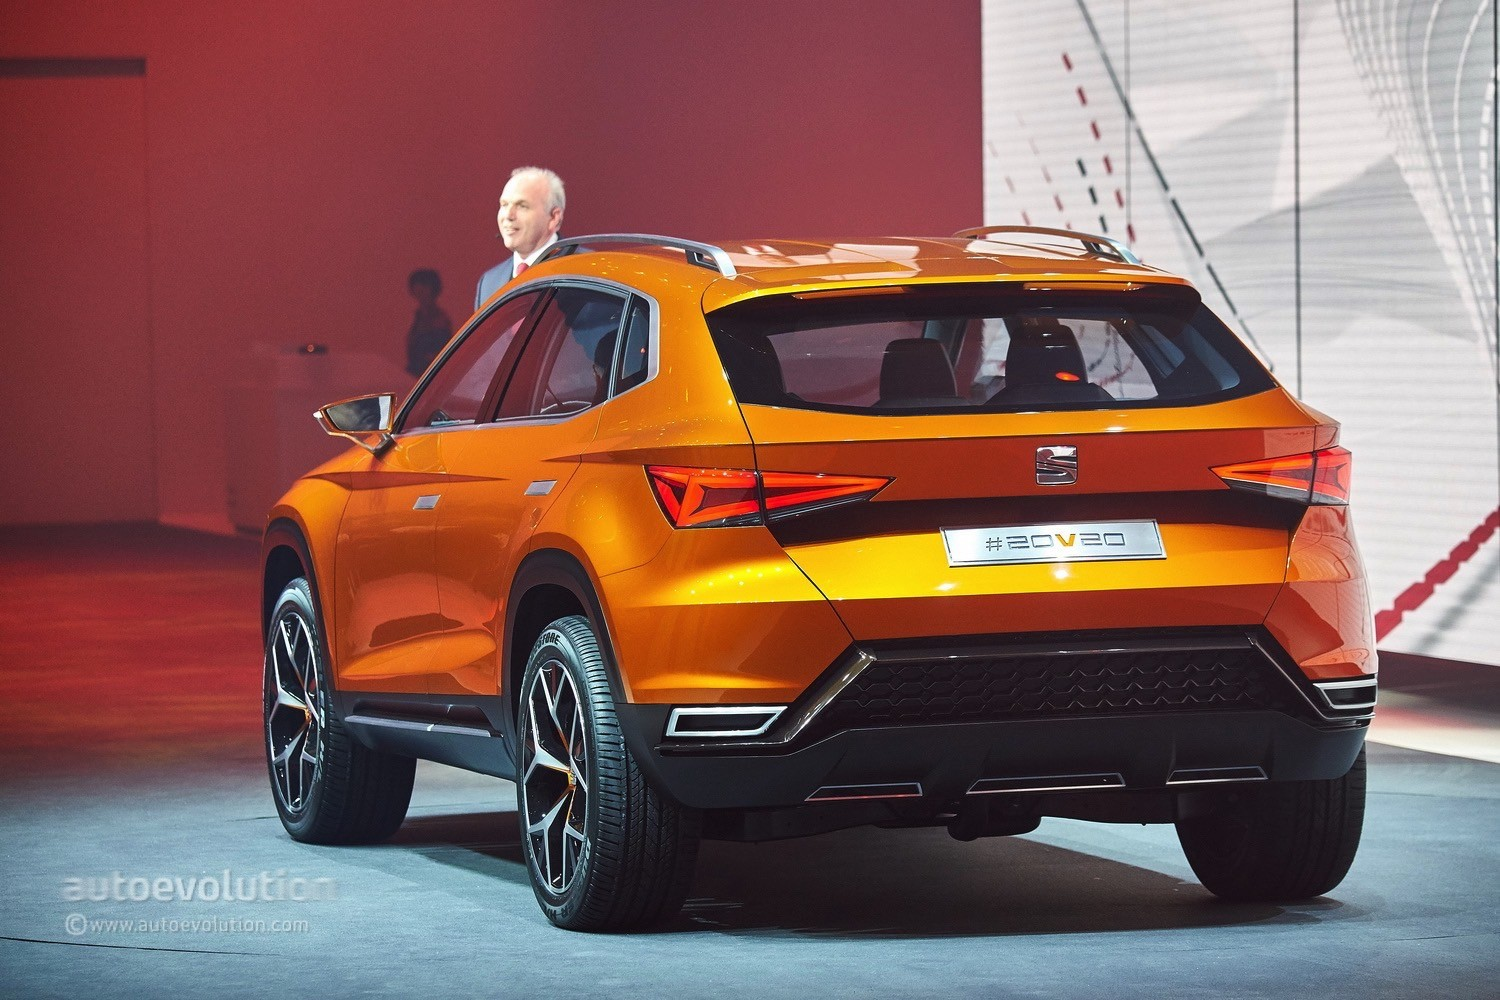 seat-prostyle-suv-will-be-the-first-of-4-new-models-coming-until-2017_17